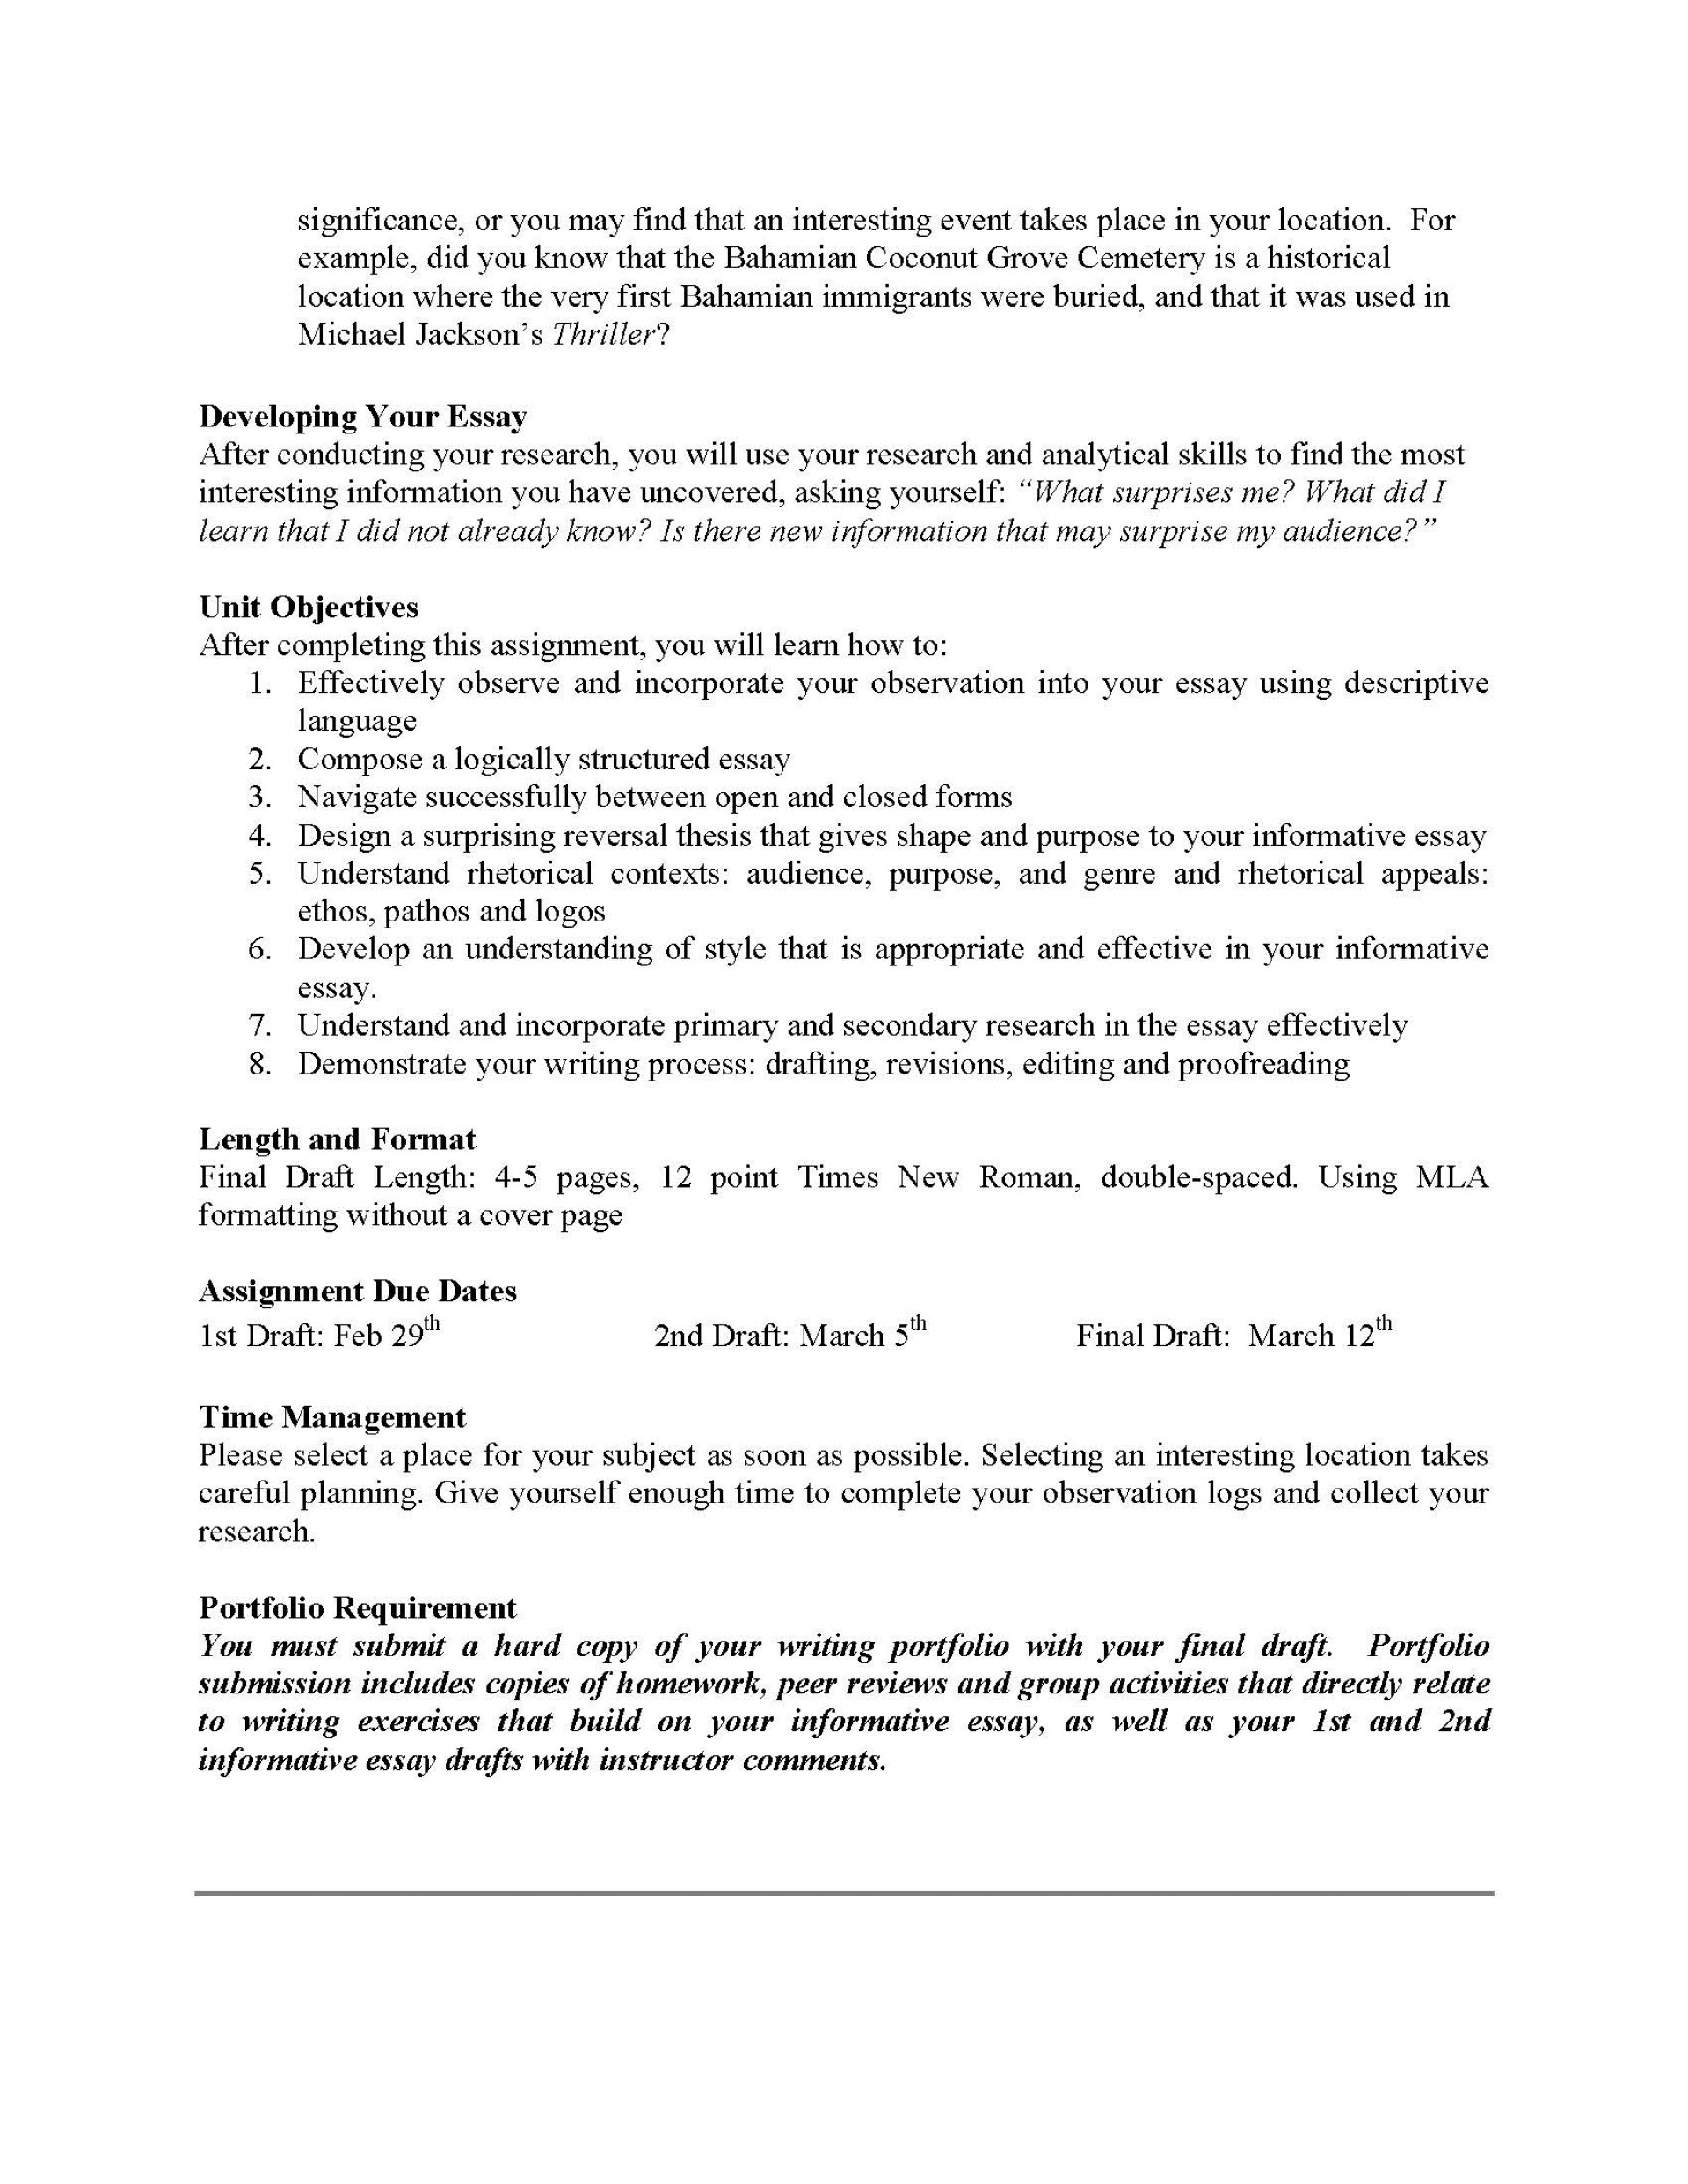 014 Informative Essay Unit Assignment Page 2 Dreaded Graphic Organizer Prompts Middle School 3rd Grade 1920